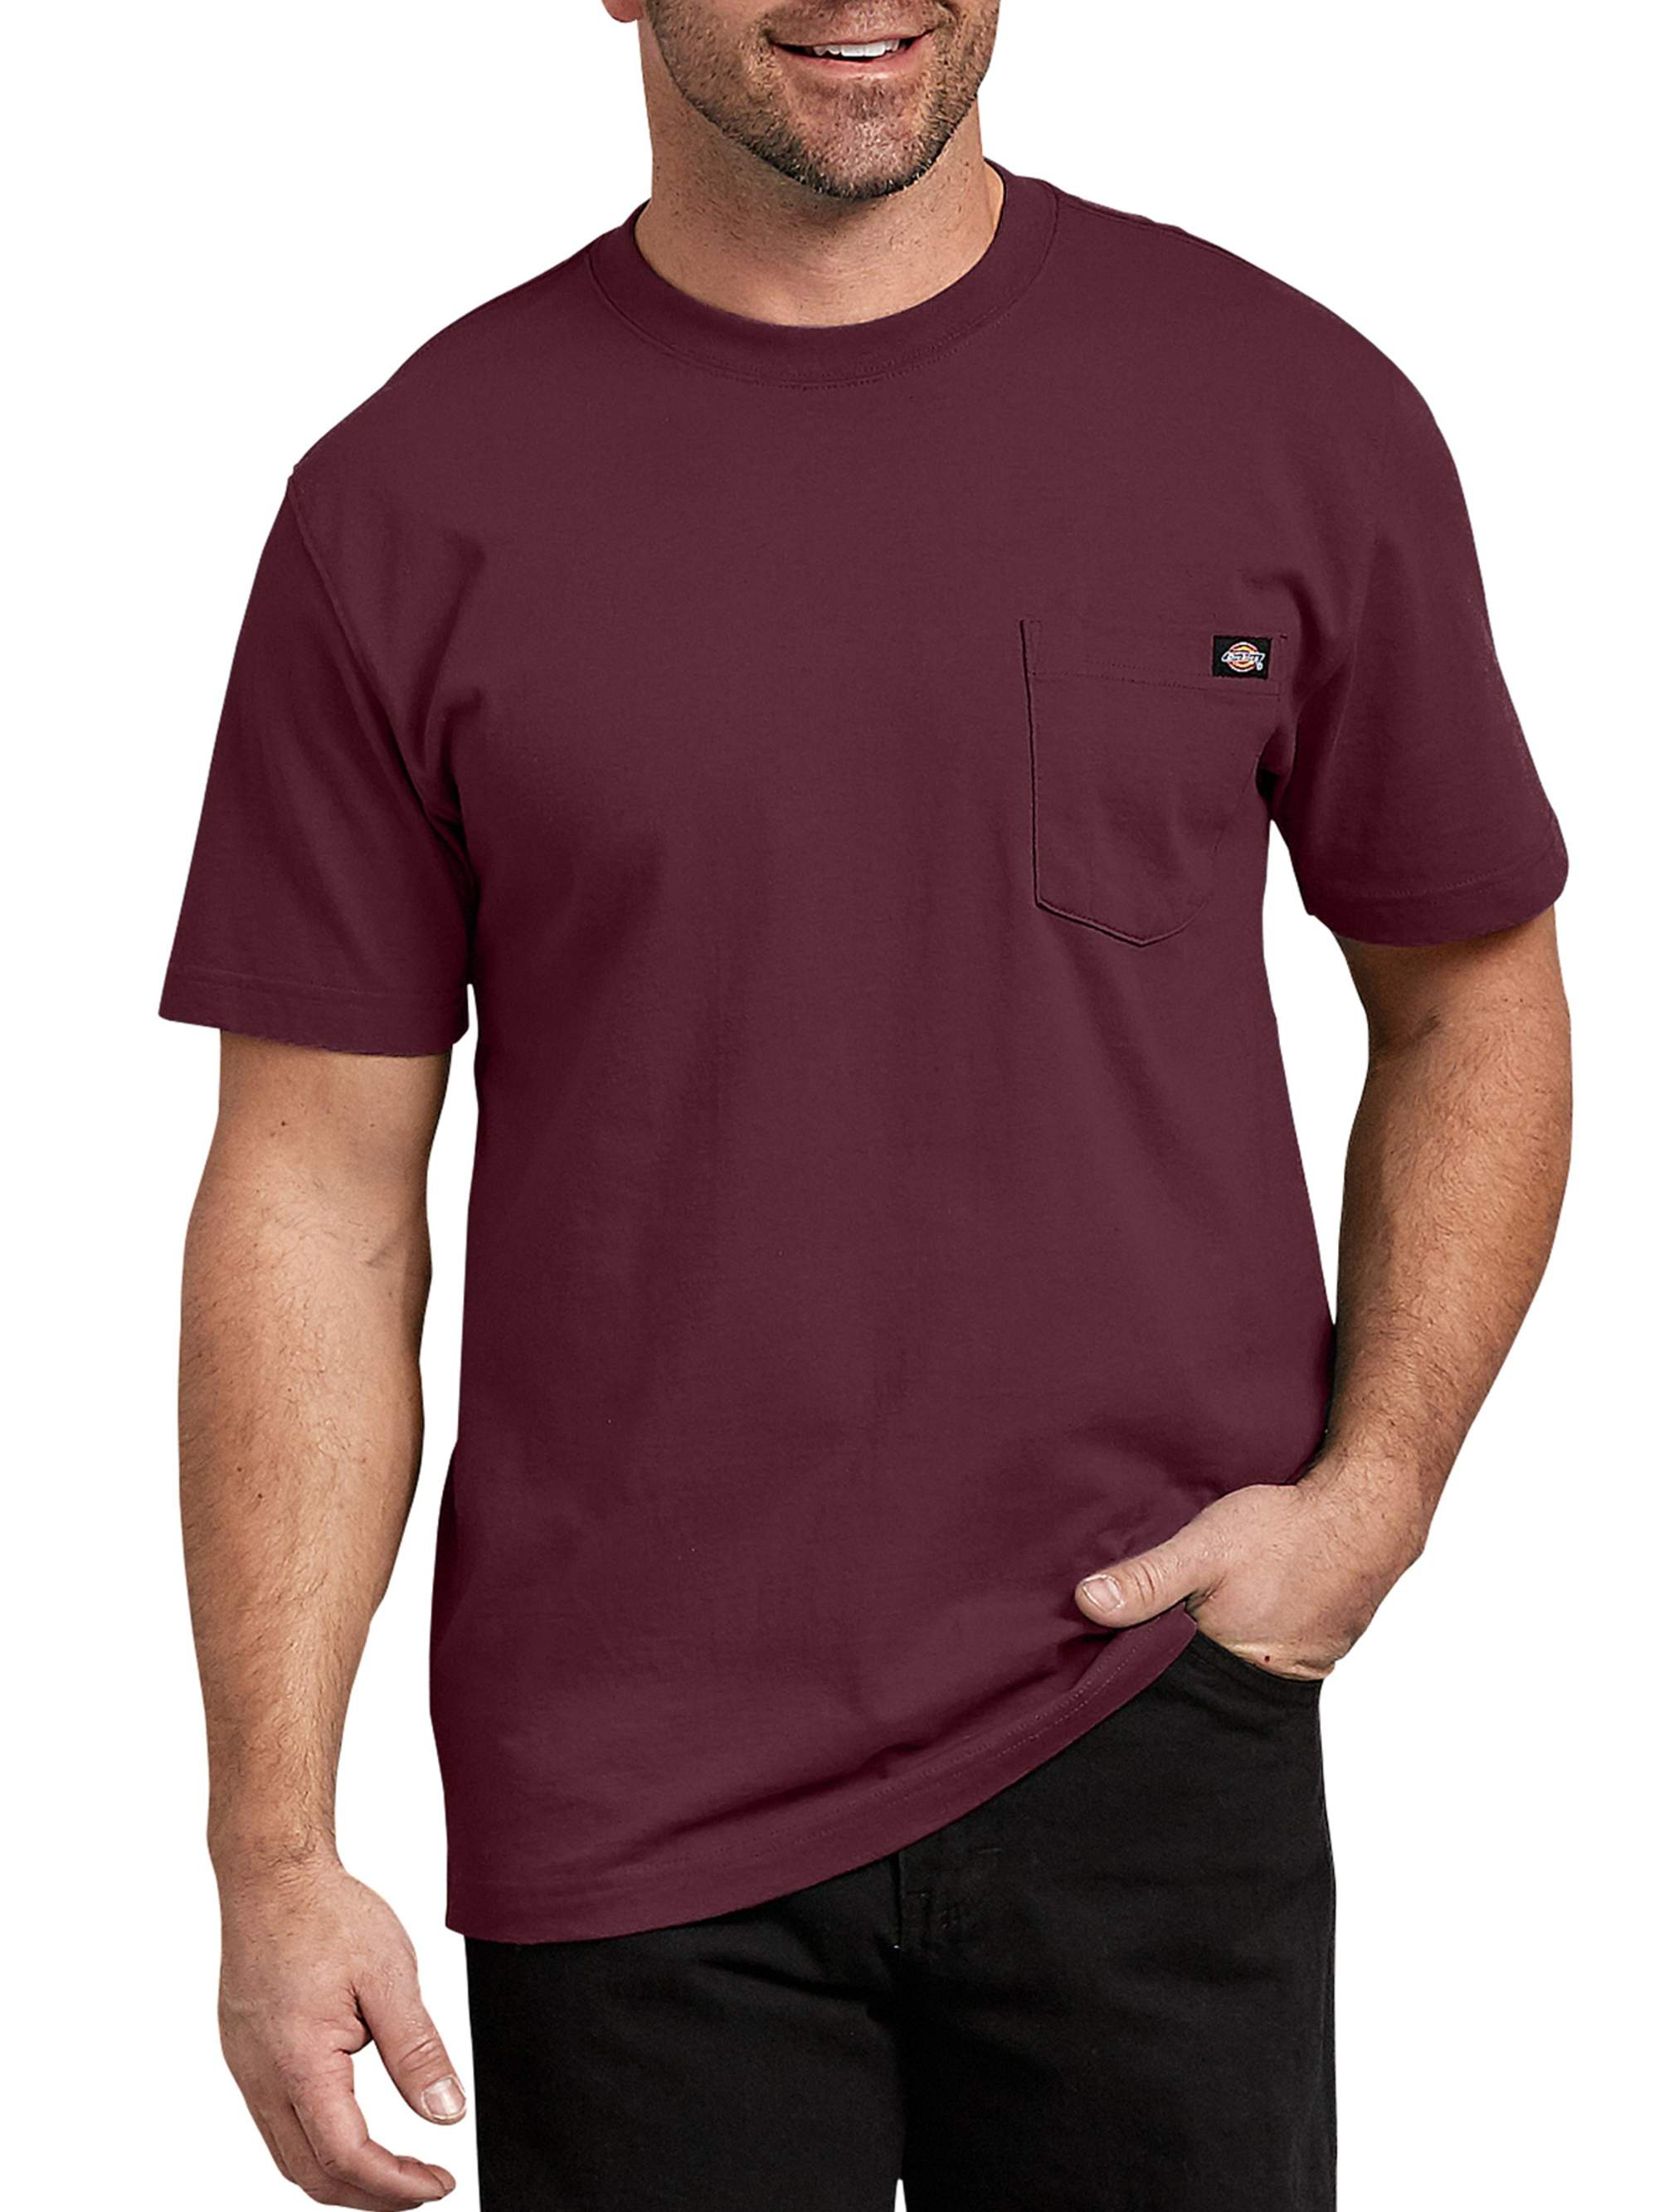 Mens Short Sleeve Heavyweight Tee, Souther Fall - M